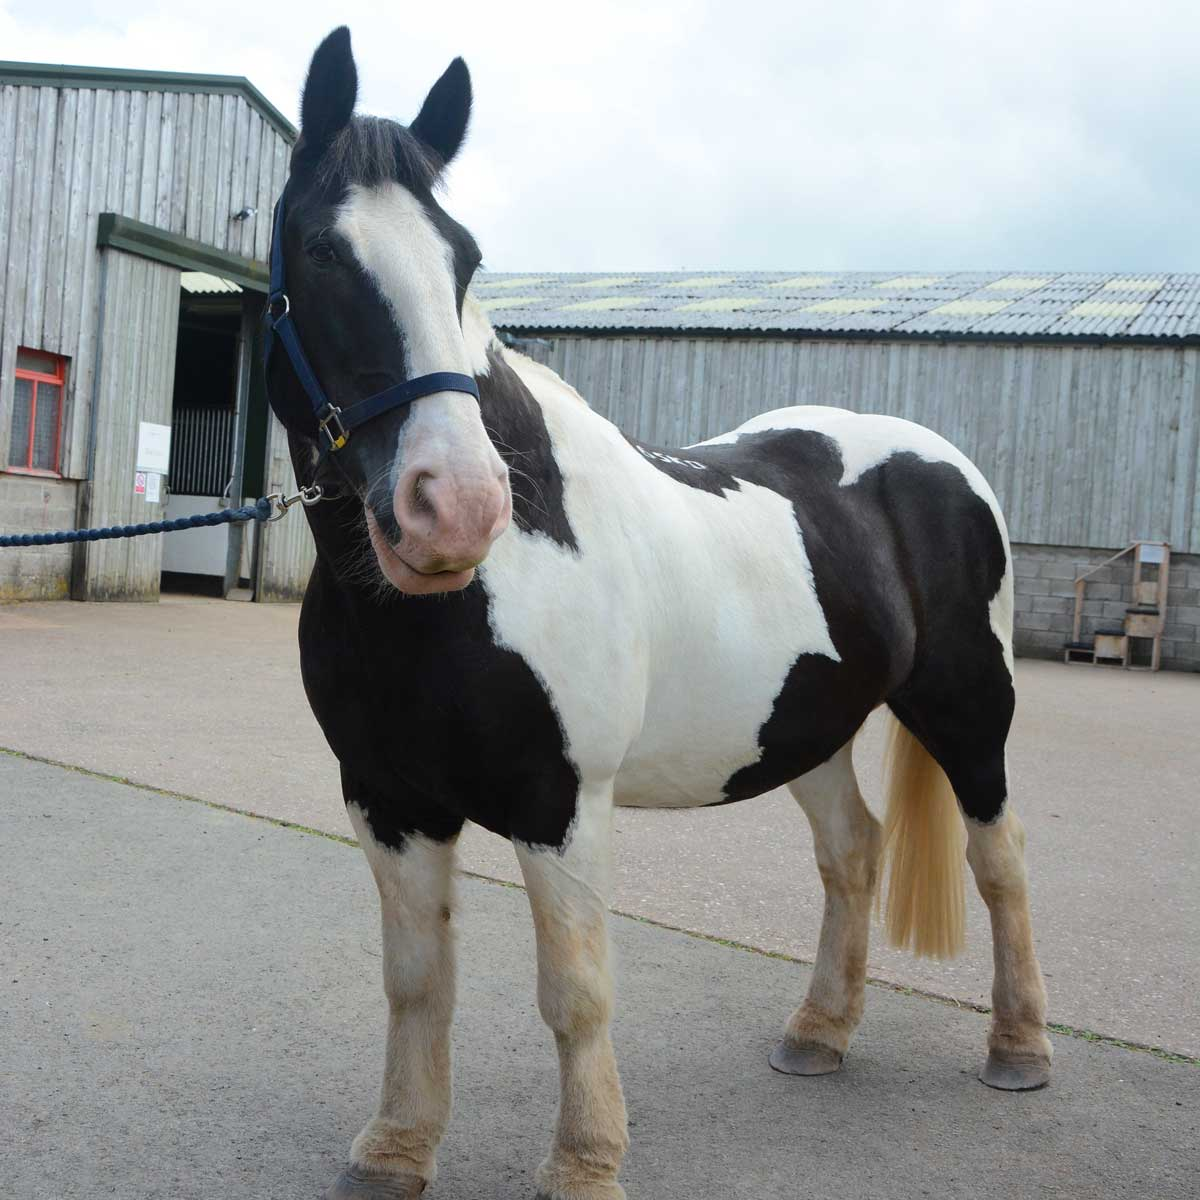 Dark brown and white horse standing up outside stables buildings